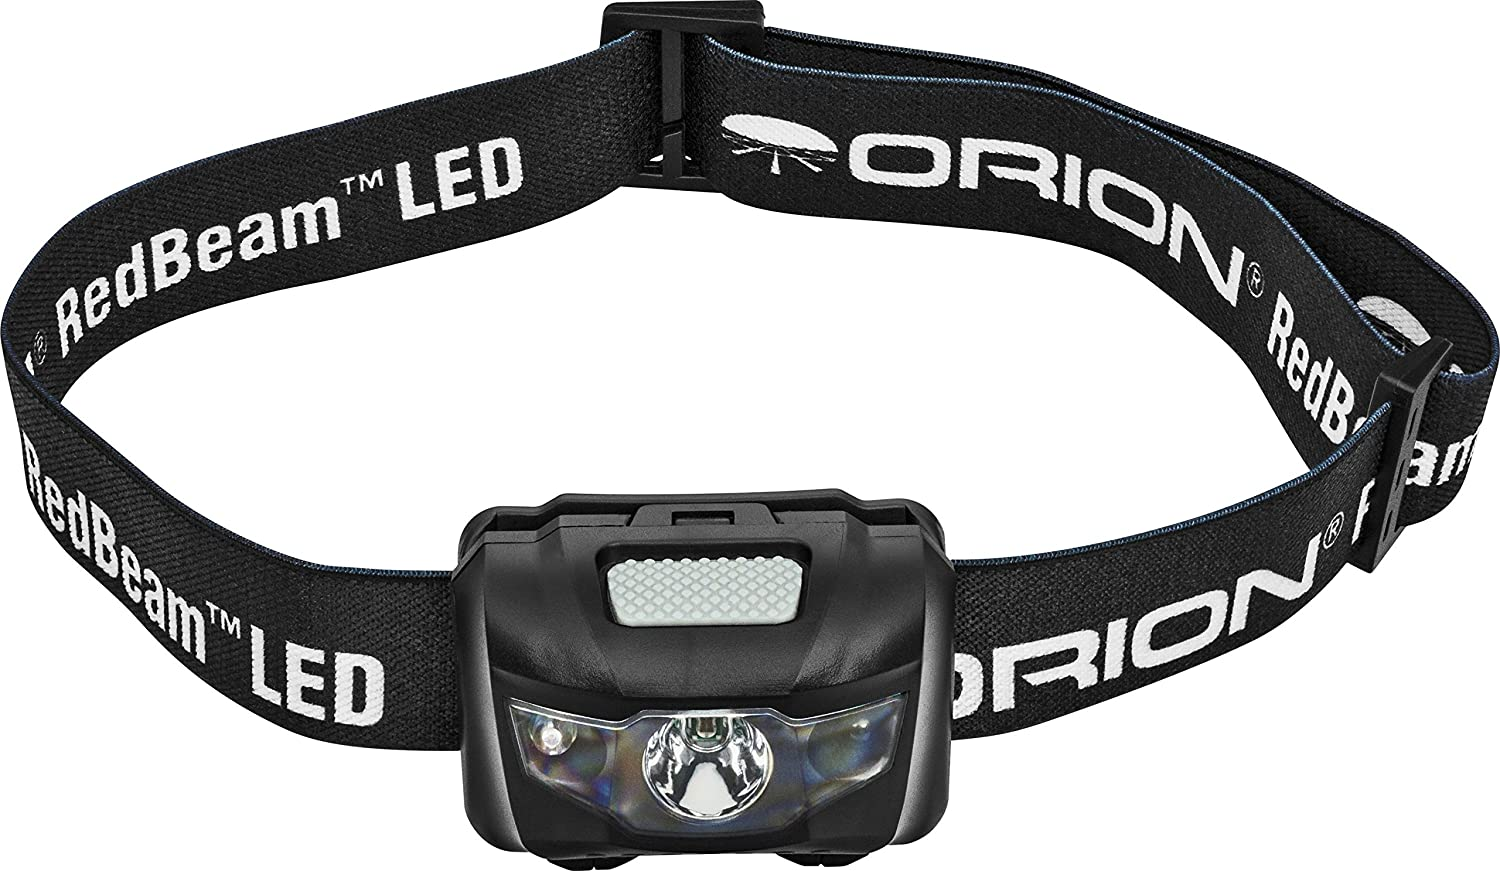 Orion 05383 Motion Sensing Led Motion Sensing Headlamp, RedBeam Optronic Technologies Inc